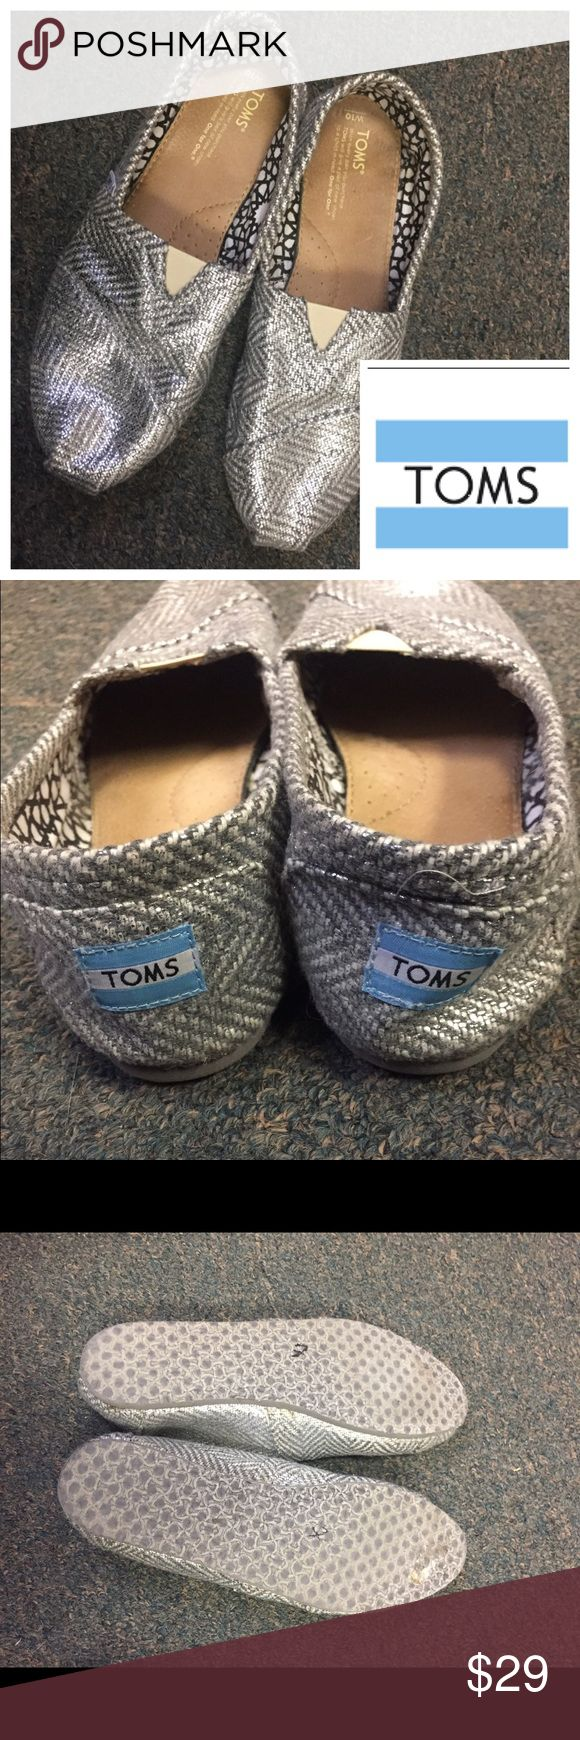 ⚜Women's Silver Herringbone Toms. Size 10 ⚜Women's Silver Herringbone Toms. Size 10. Excellent condition. Worn once. Very clean. TOMS Shoes Espadrilles